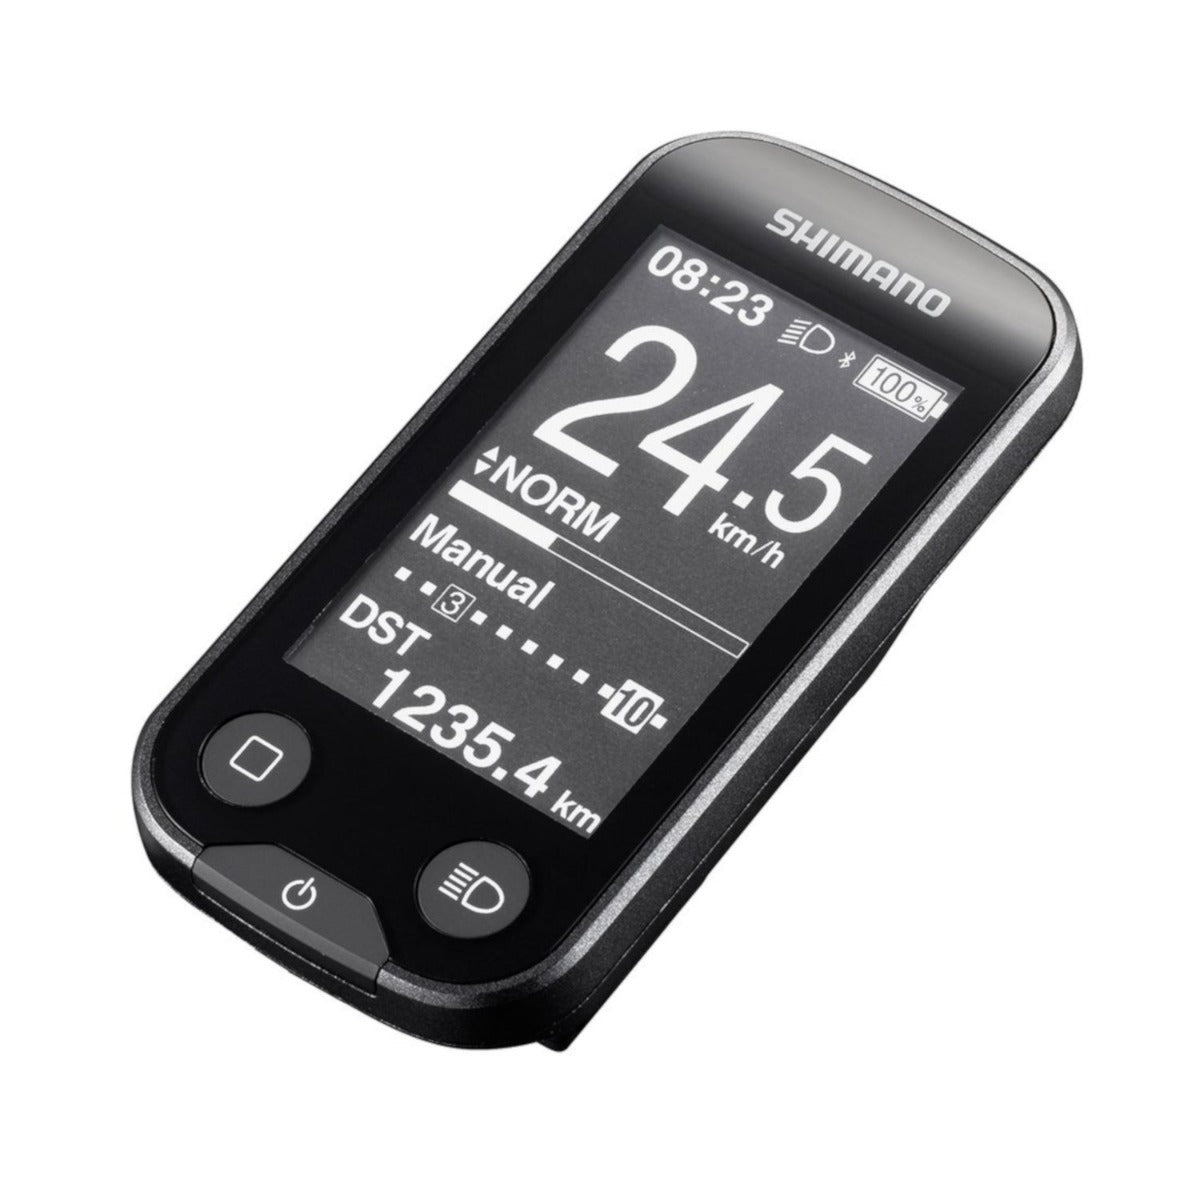 Shimano STEPS E6100 Series Display - Burkes Cycles